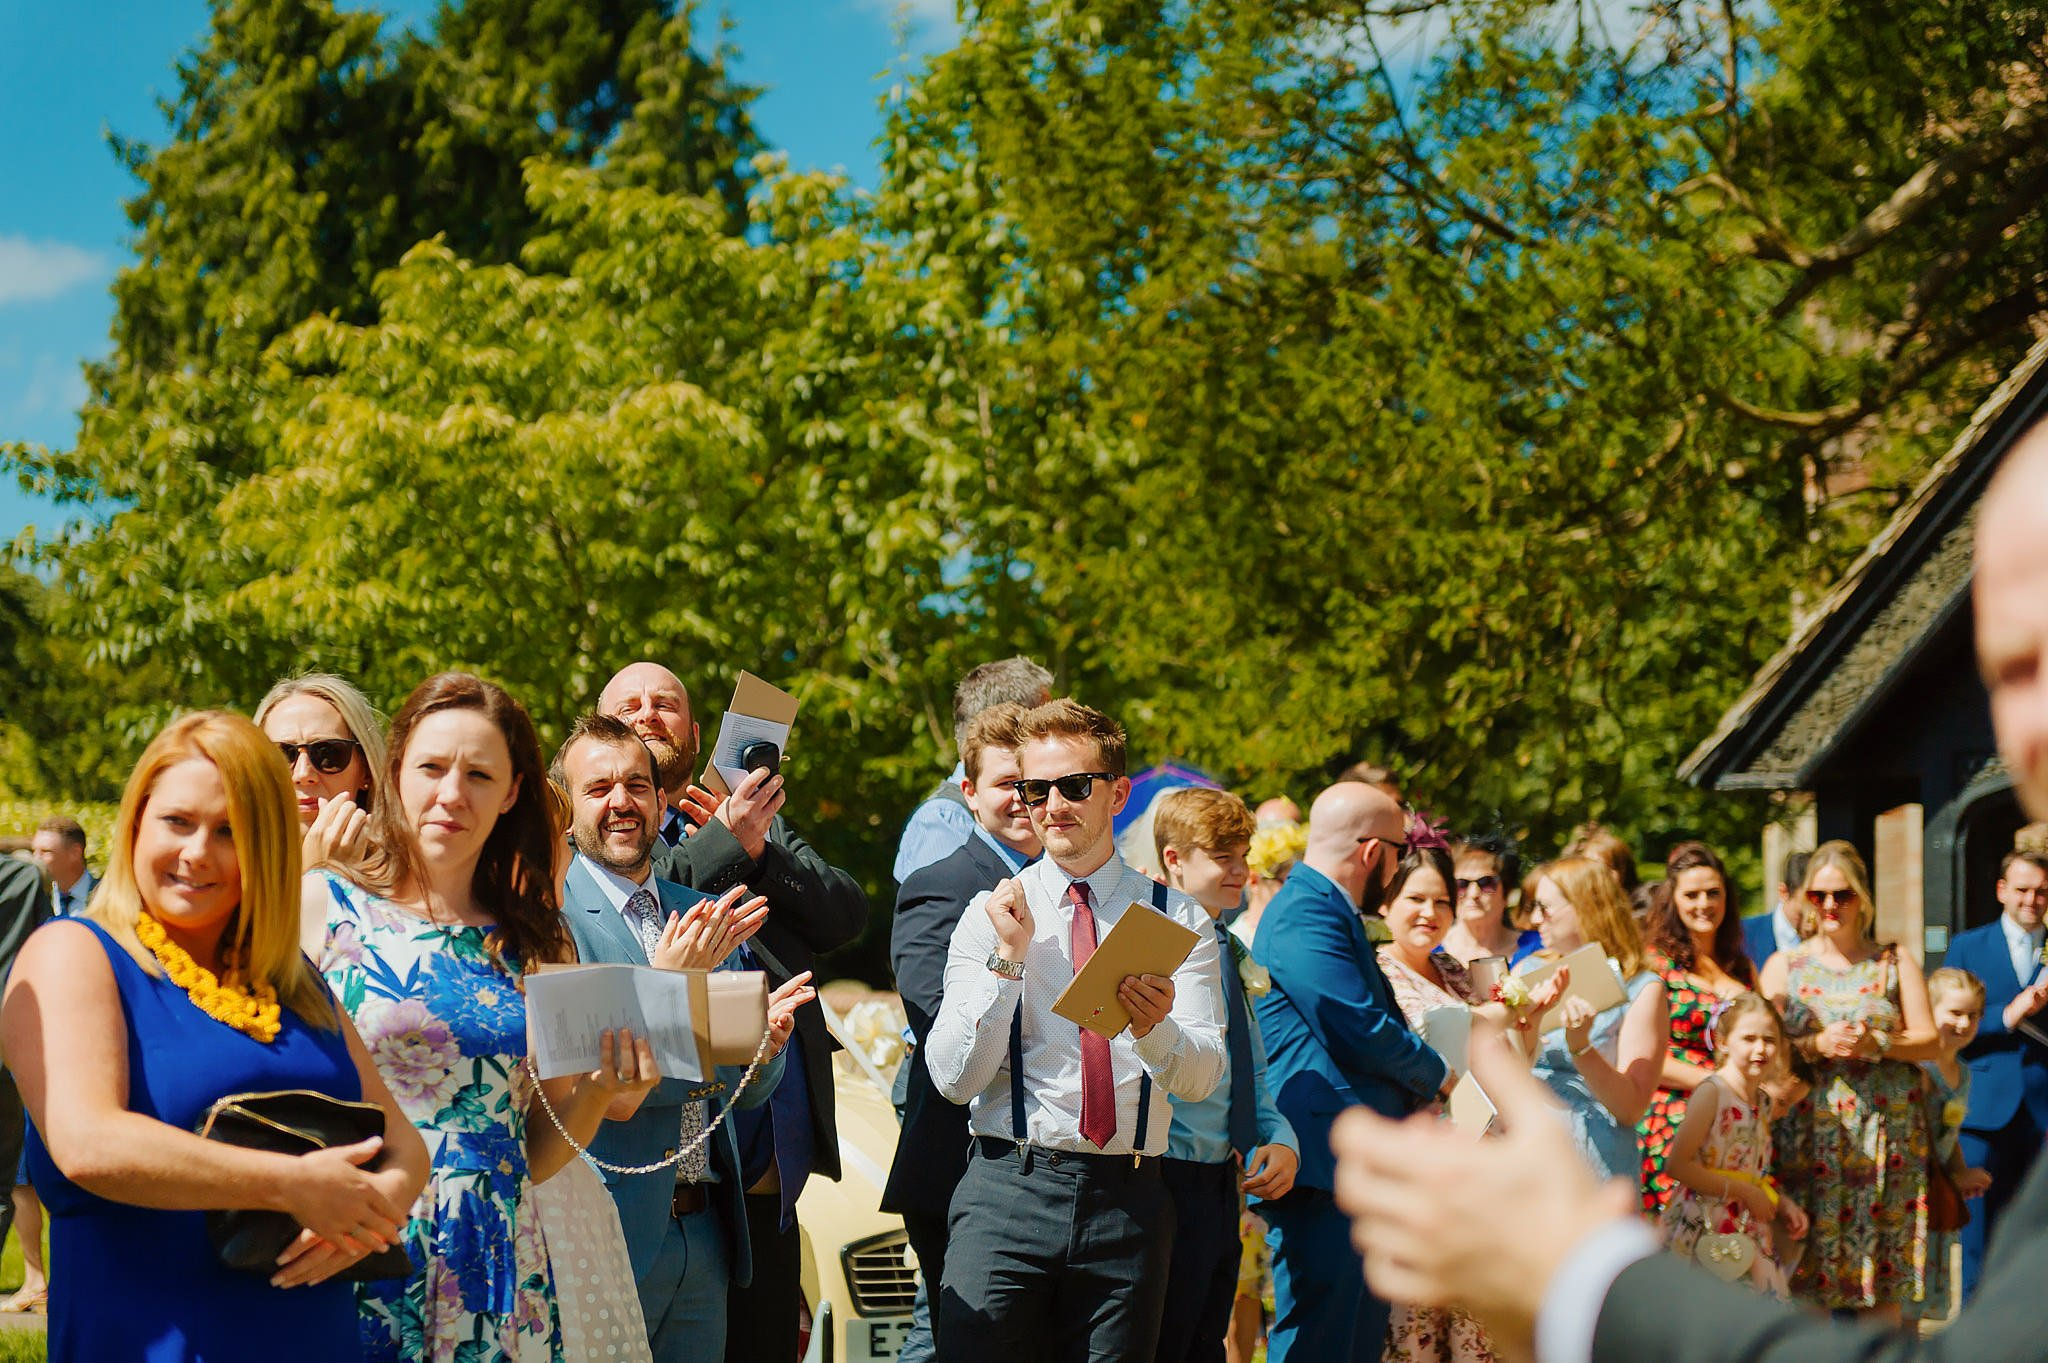 Wedding photography at Hellens Manor in Herefordshire, West Midlands | Shelley + Ian 34